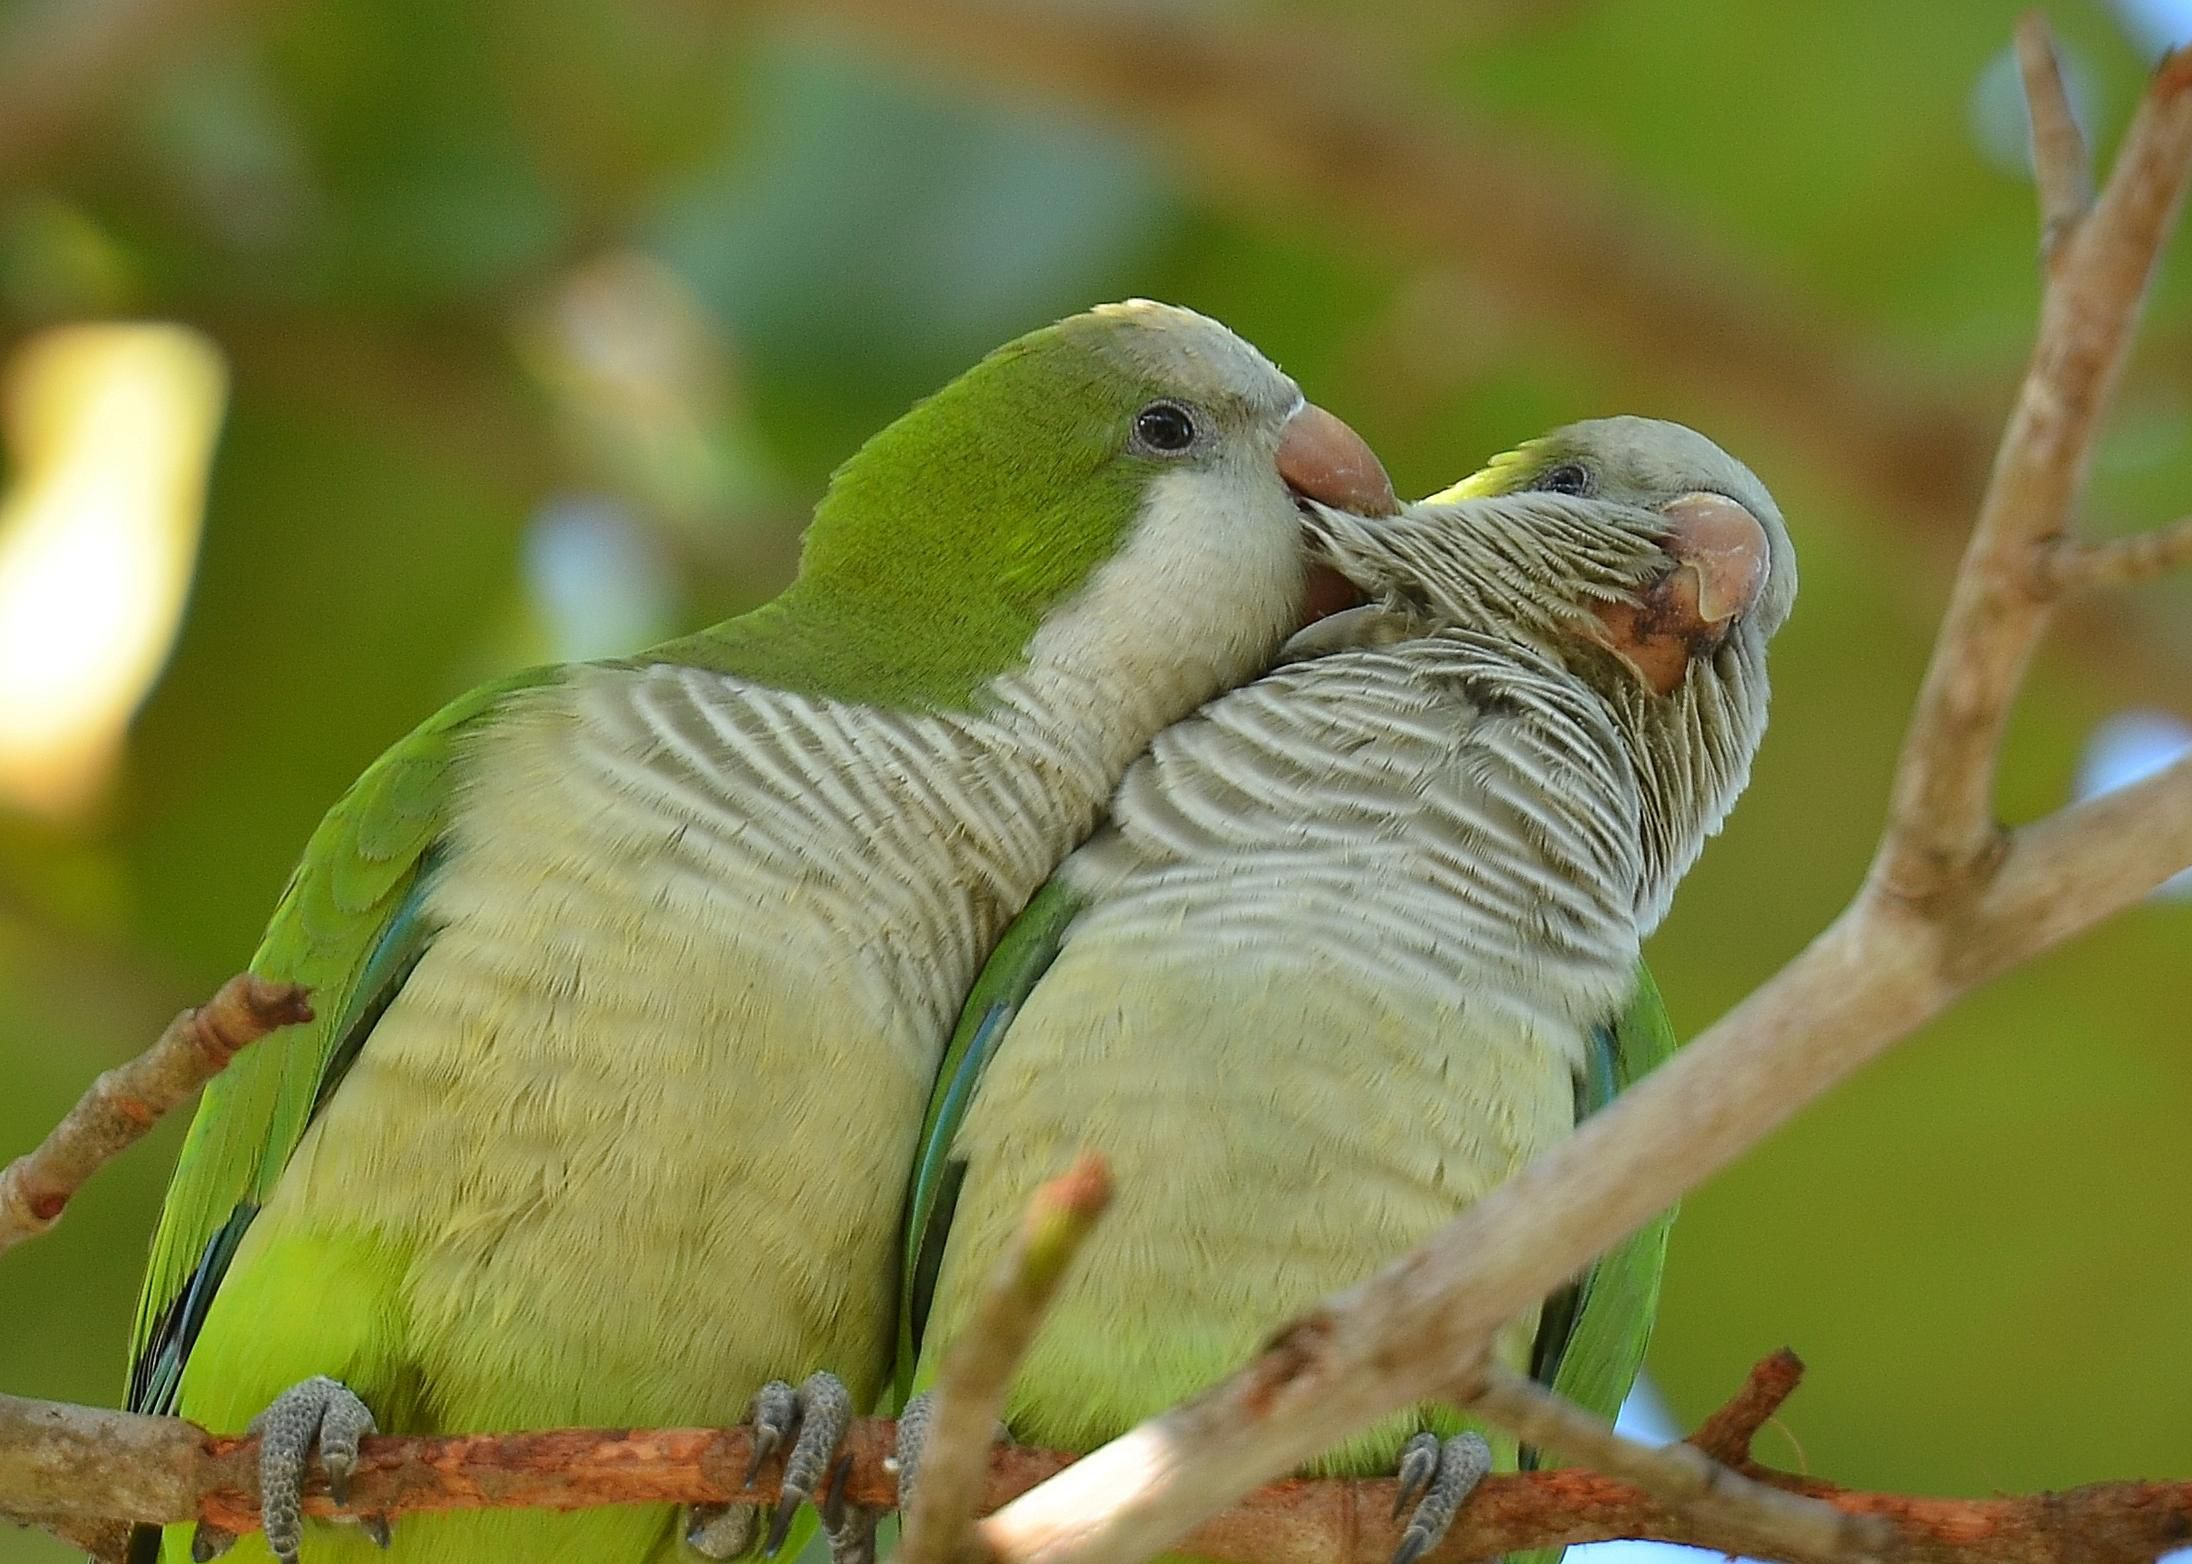 Quaker Parrot Bird Species Profile